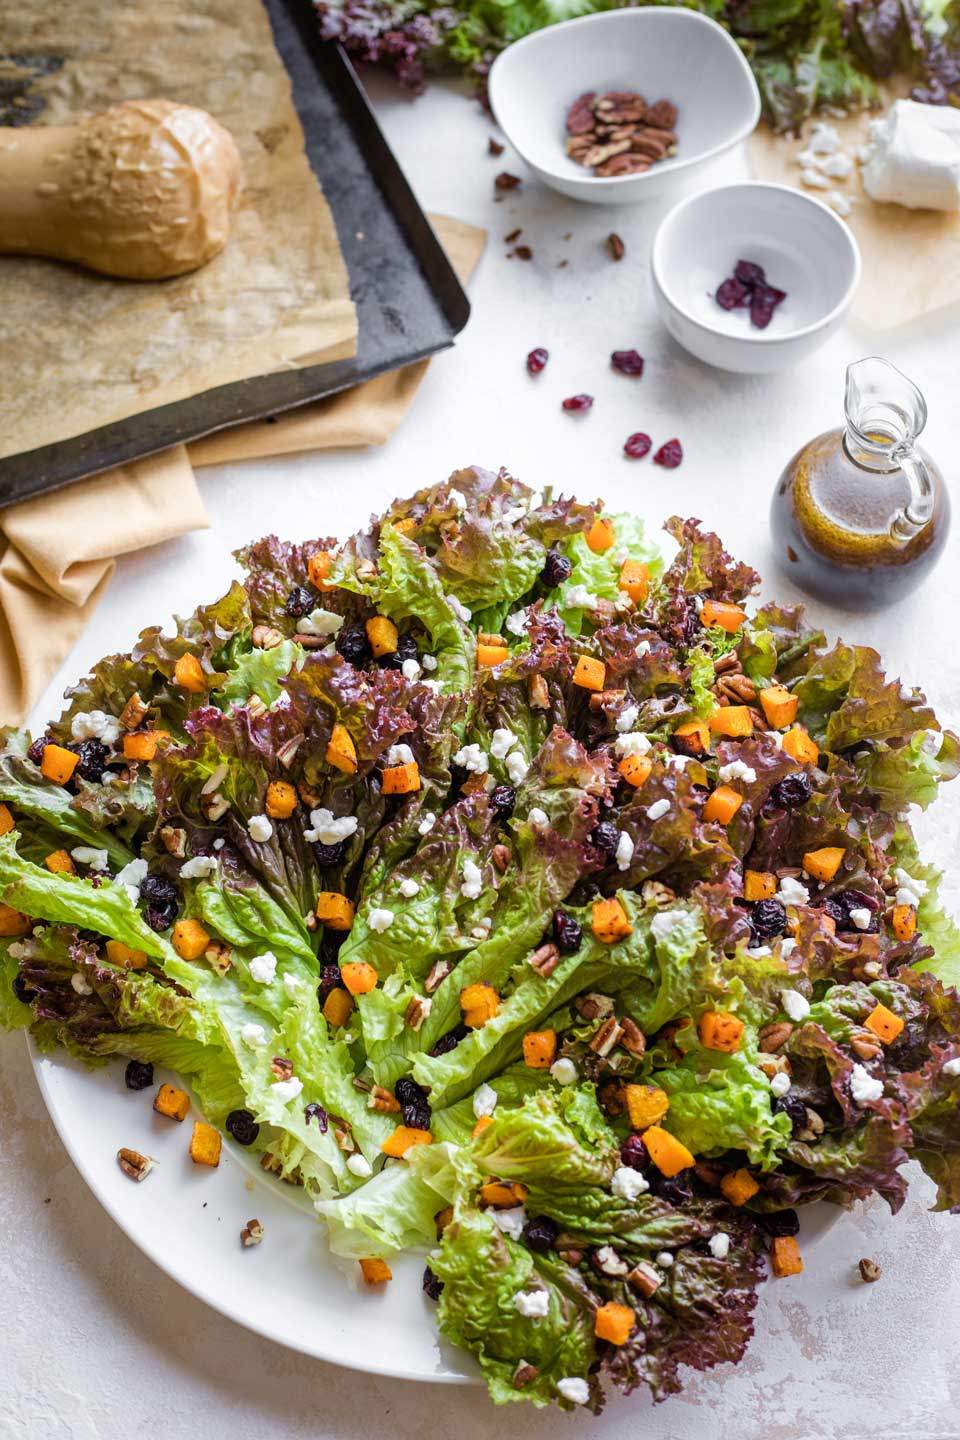 overhead of salad platter with lettuce leaves layered on, sprinkled with toppings